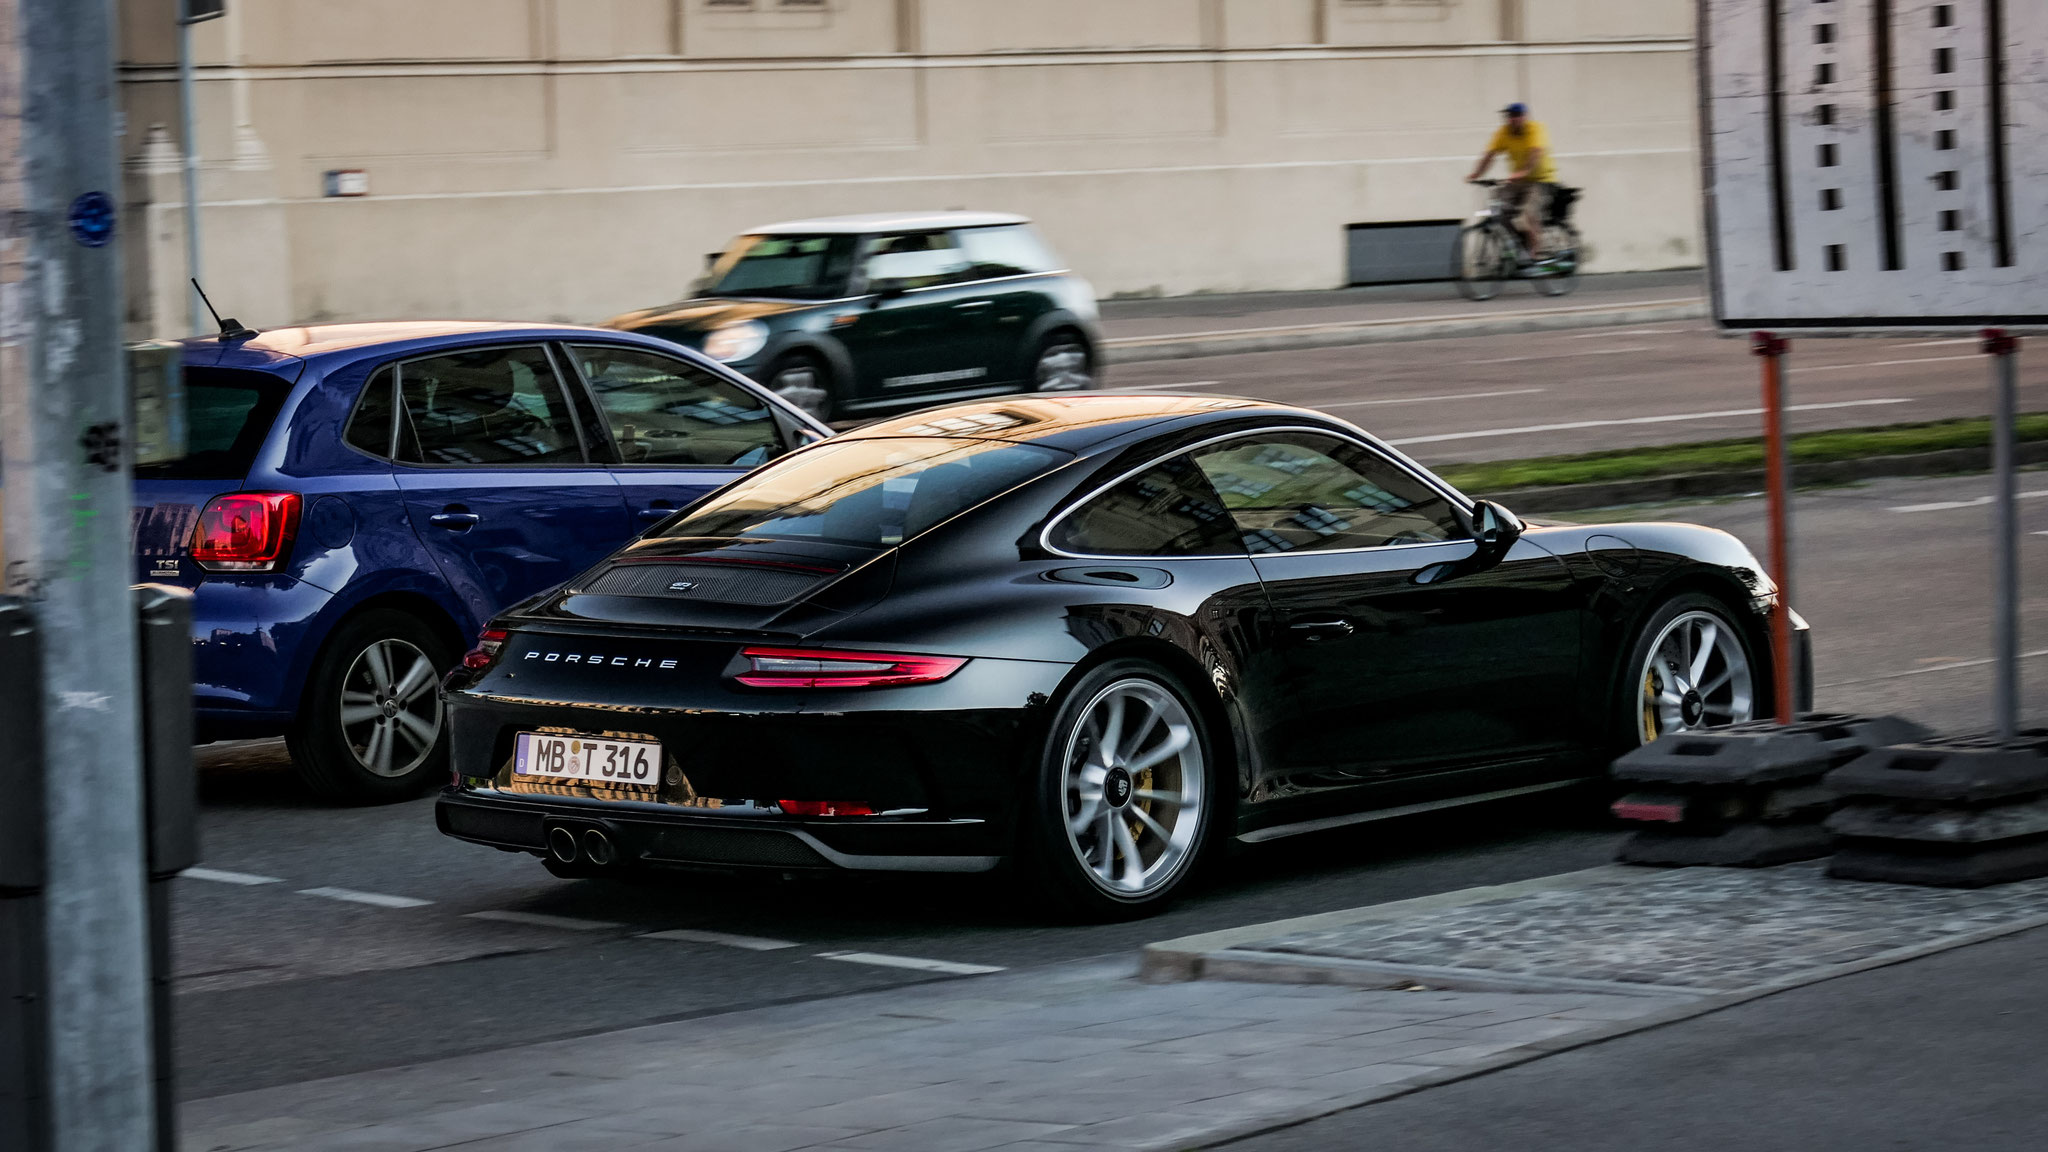 Porsche 991 GT3 Touring Package - MB-T-316